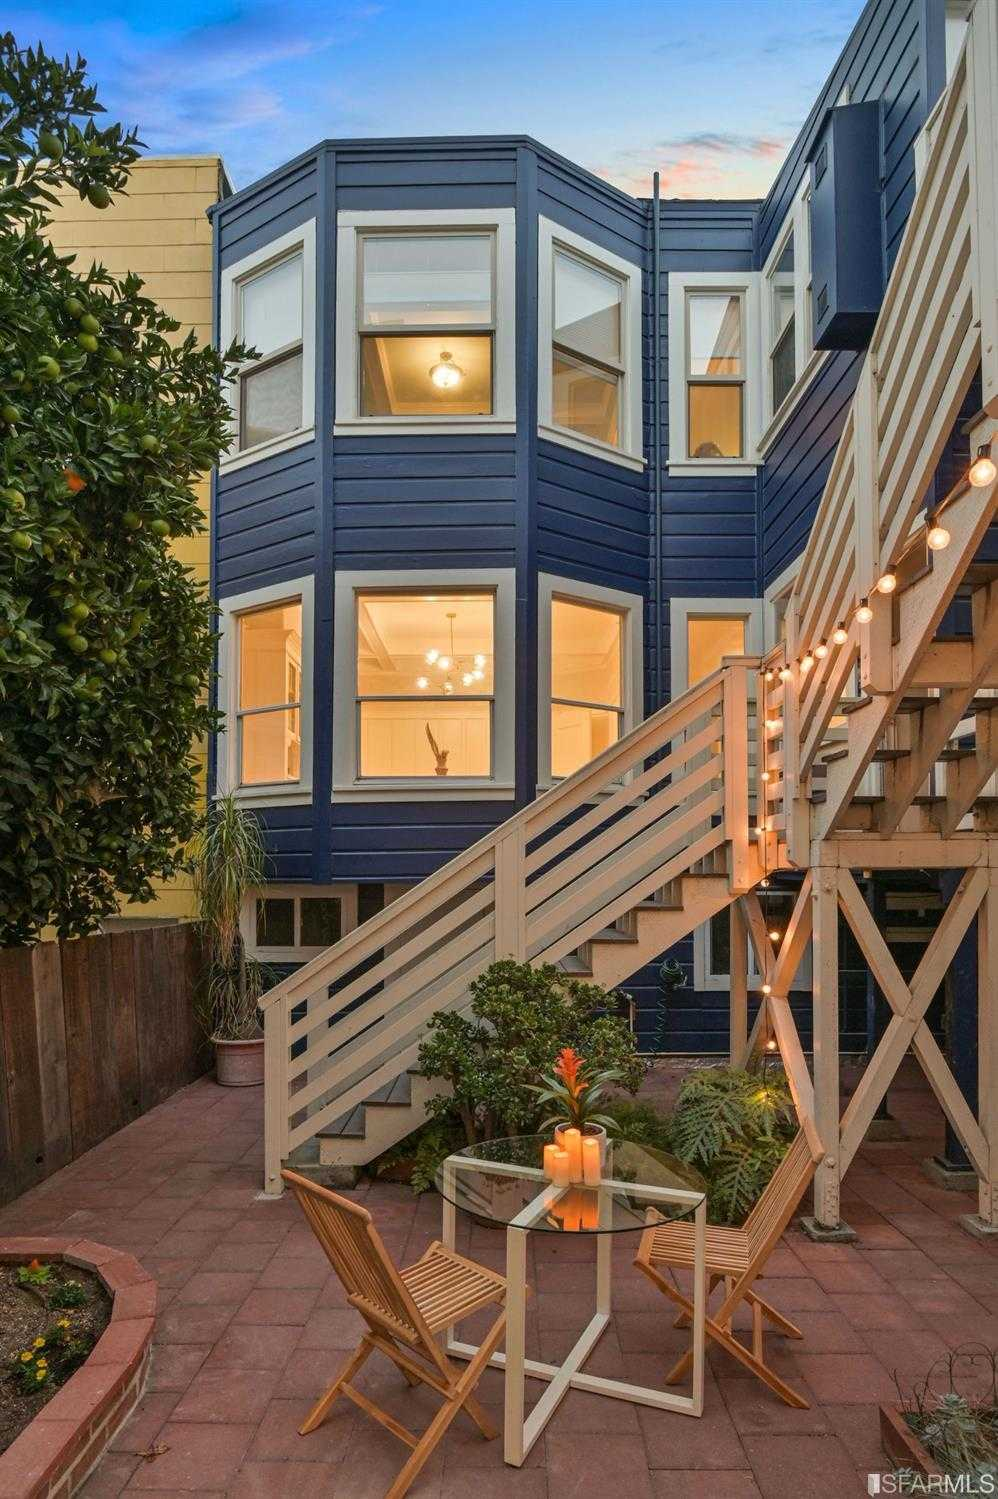 $1,150,000 - 3Br/1Ba -  for Sale in San Francisco